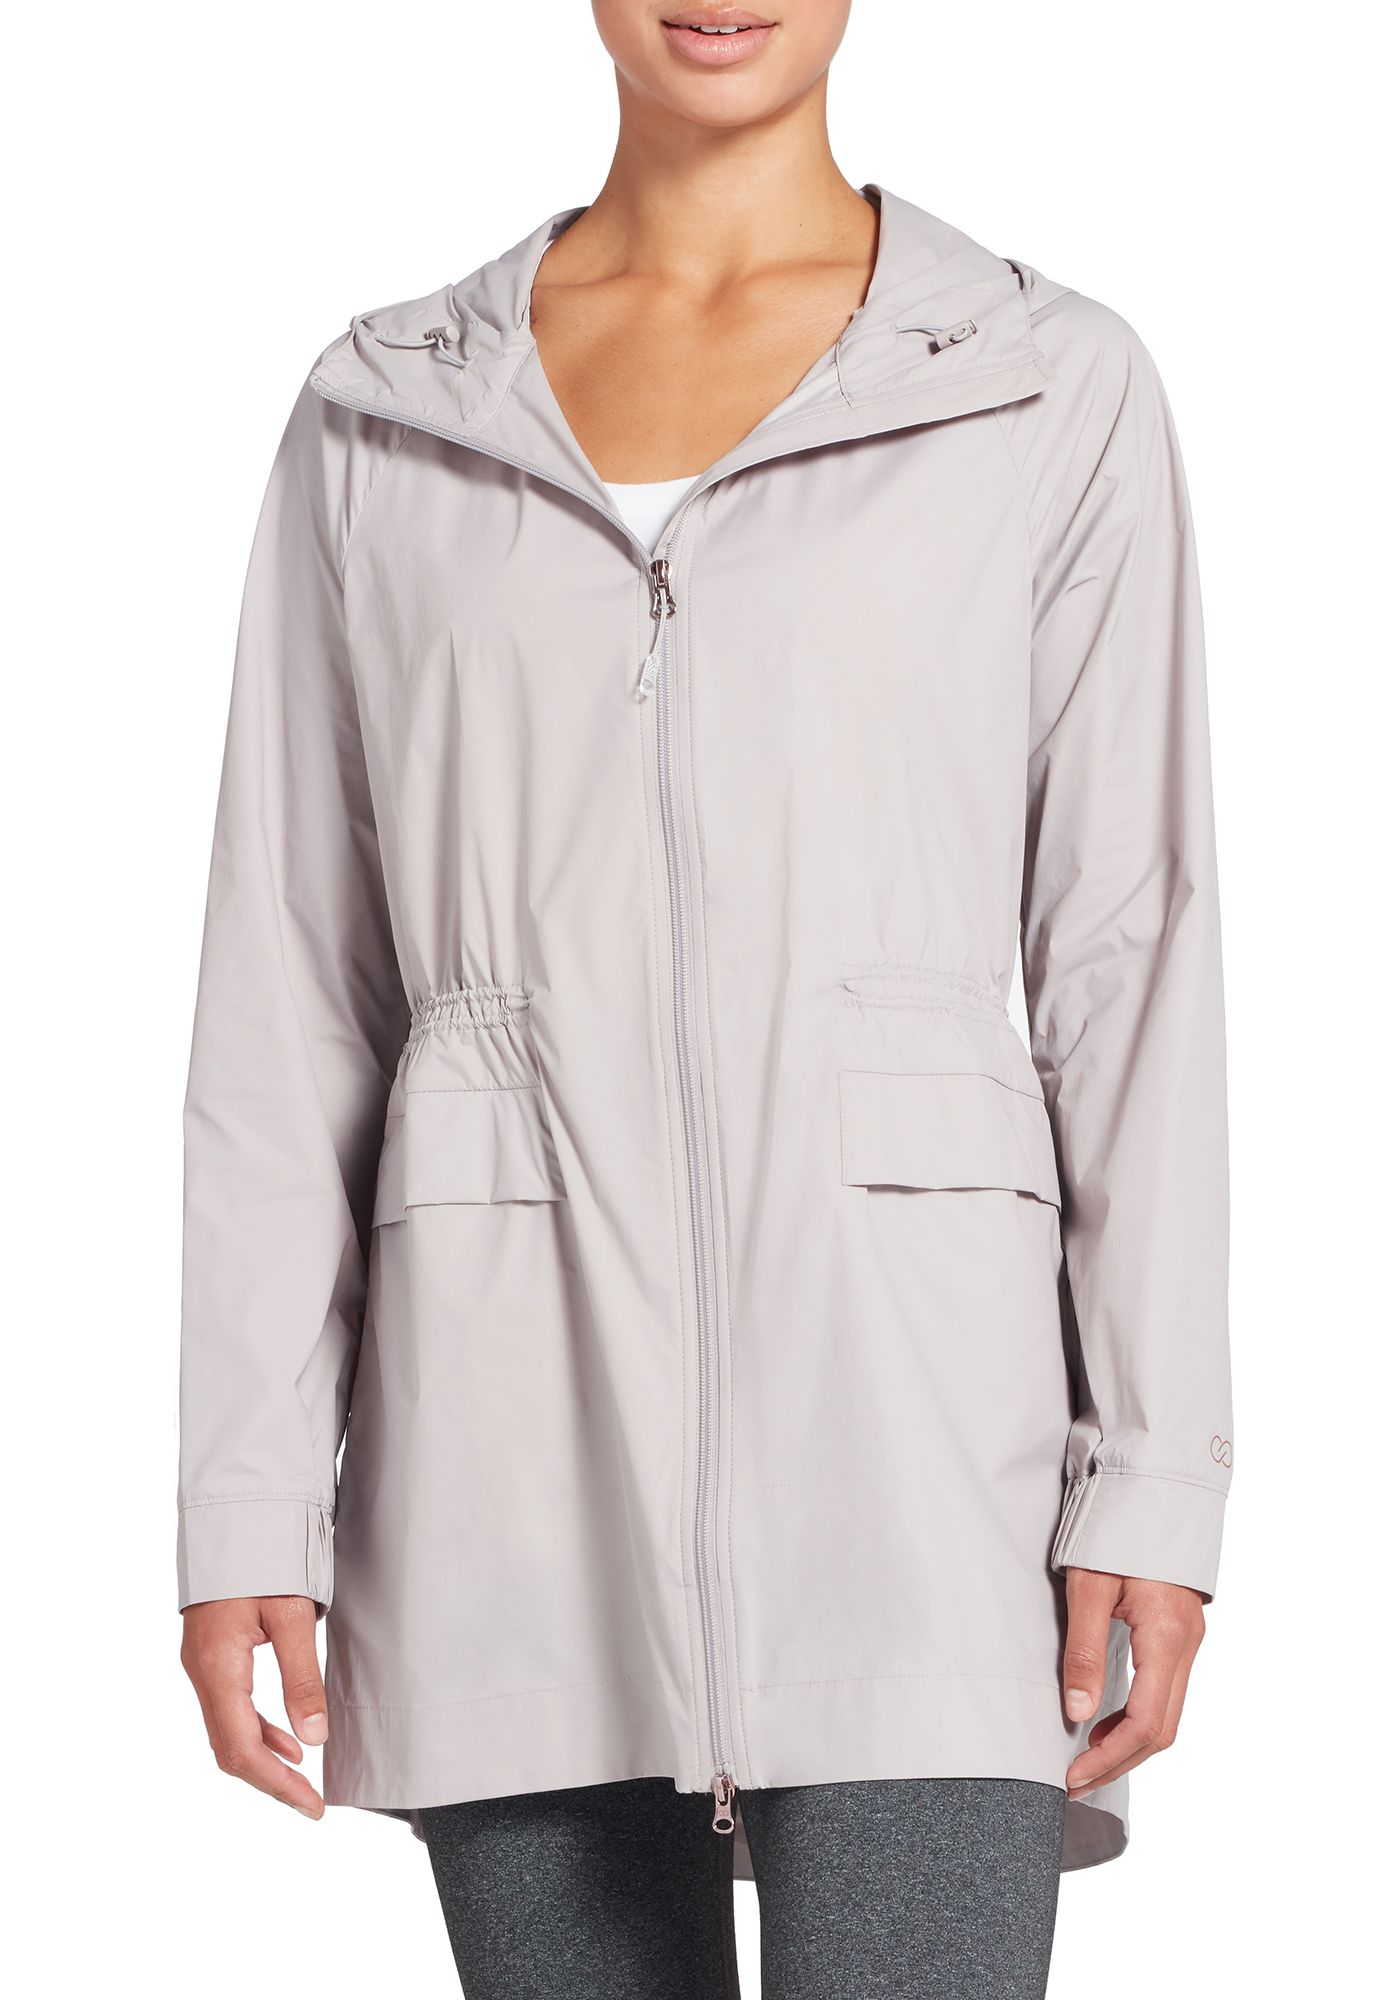 CALIA by Carrie Underwood Women's Woven Anorak Jacket